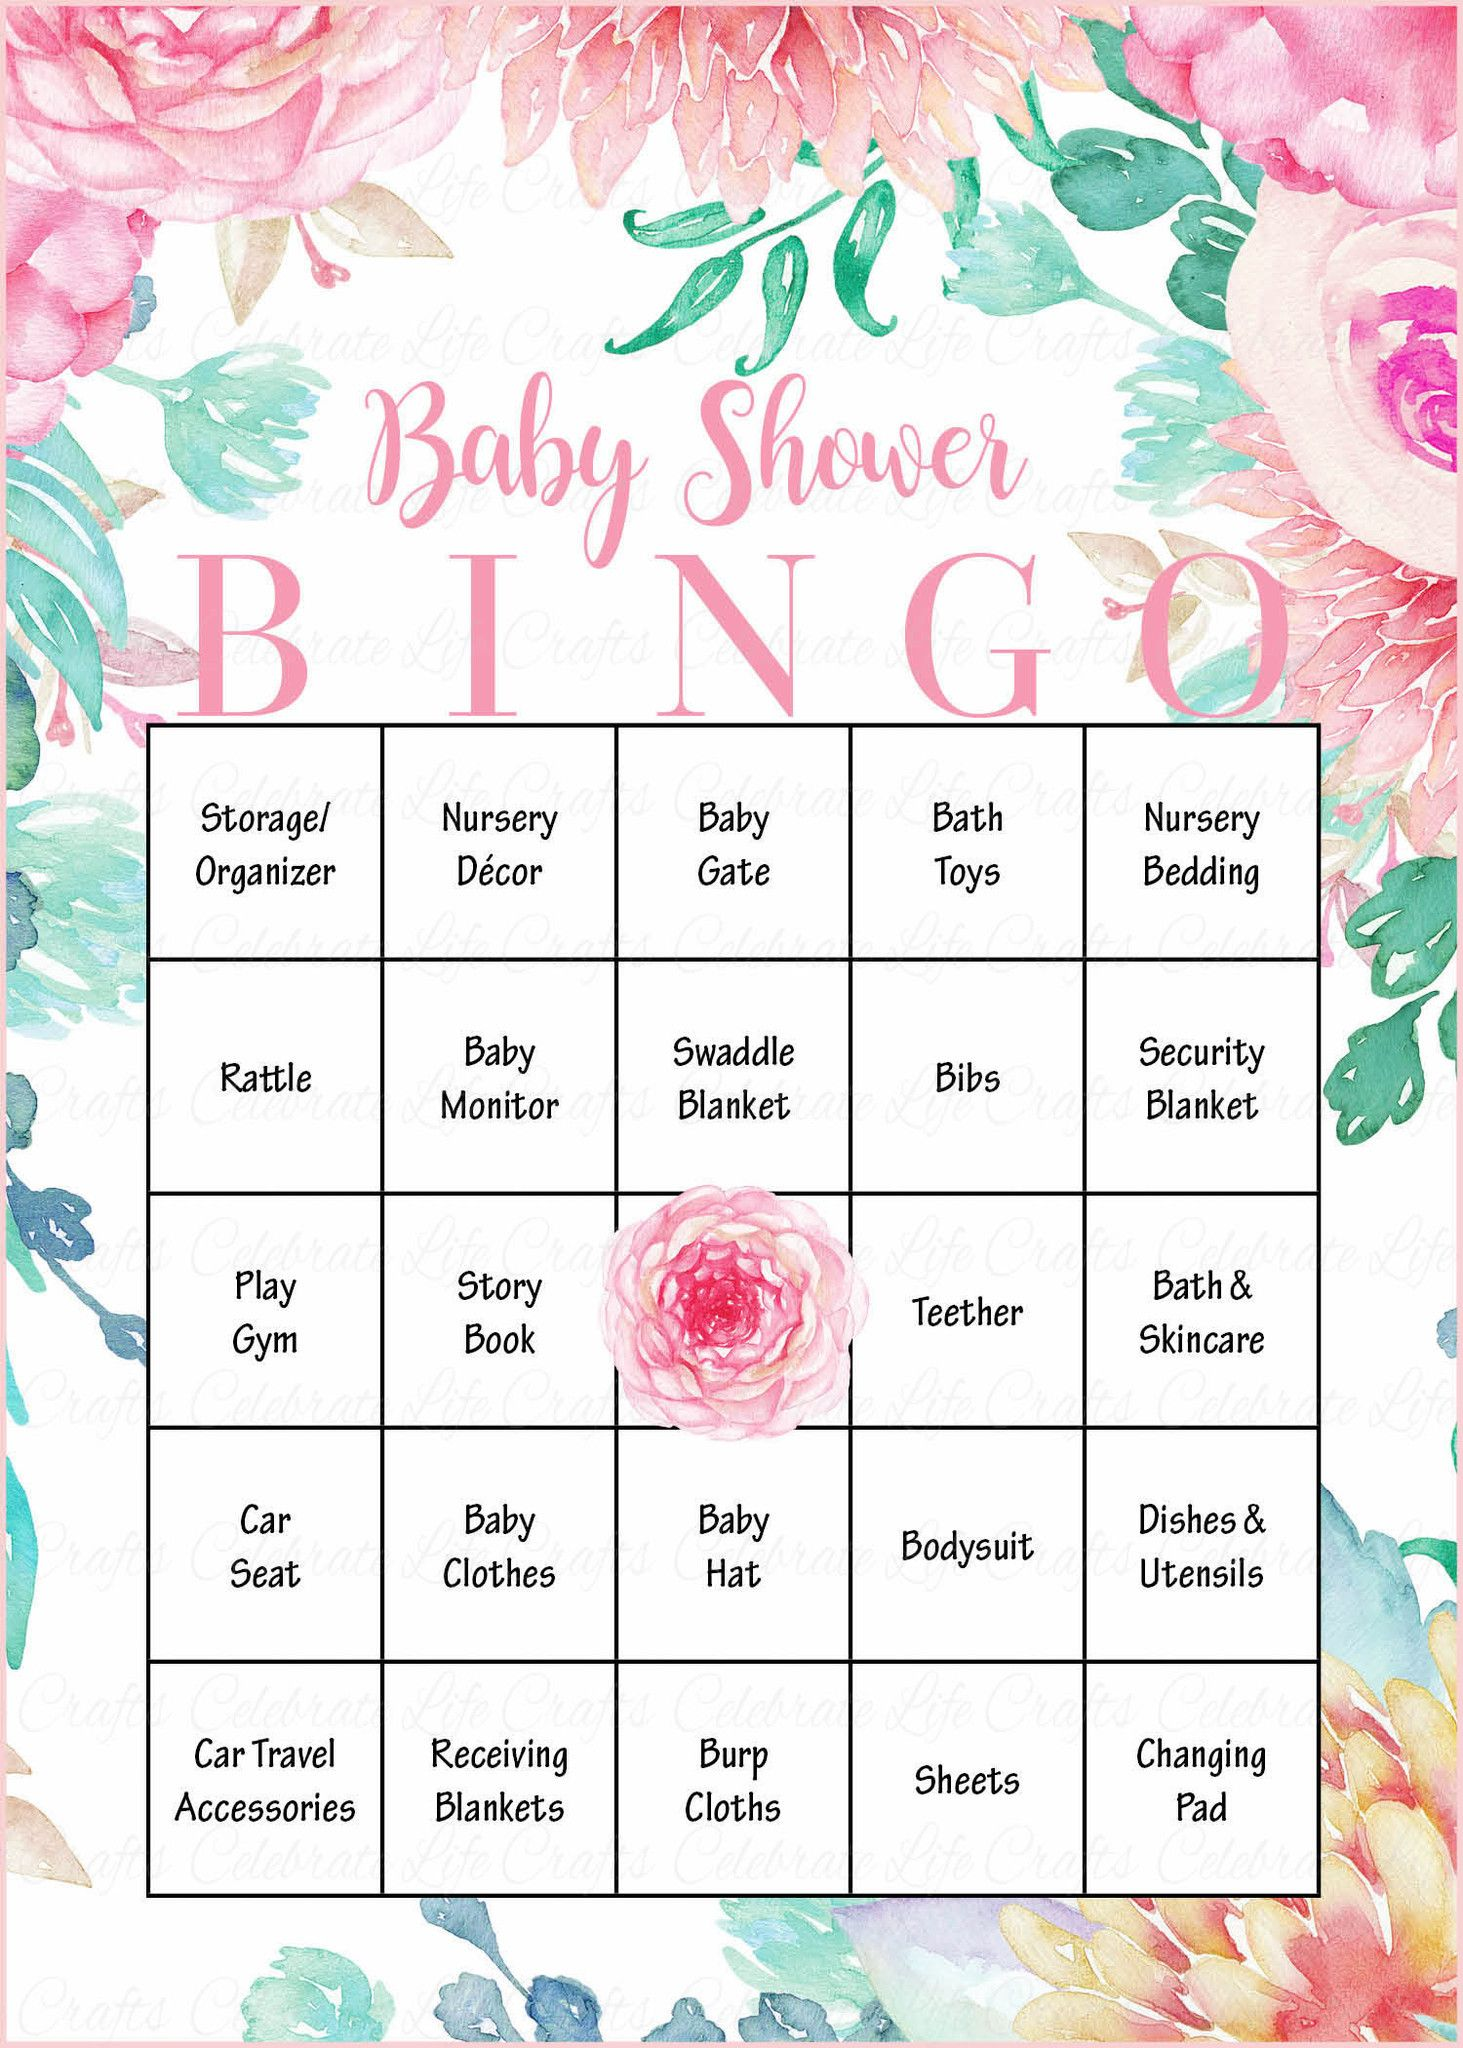 Floral Baby Bingo Cards Printable Download Prefilled Spring Baby Shower Game For Girl Pink Floral B33001 Bridal Bingo Bridal Shower Bingo Floral Bridal Shower